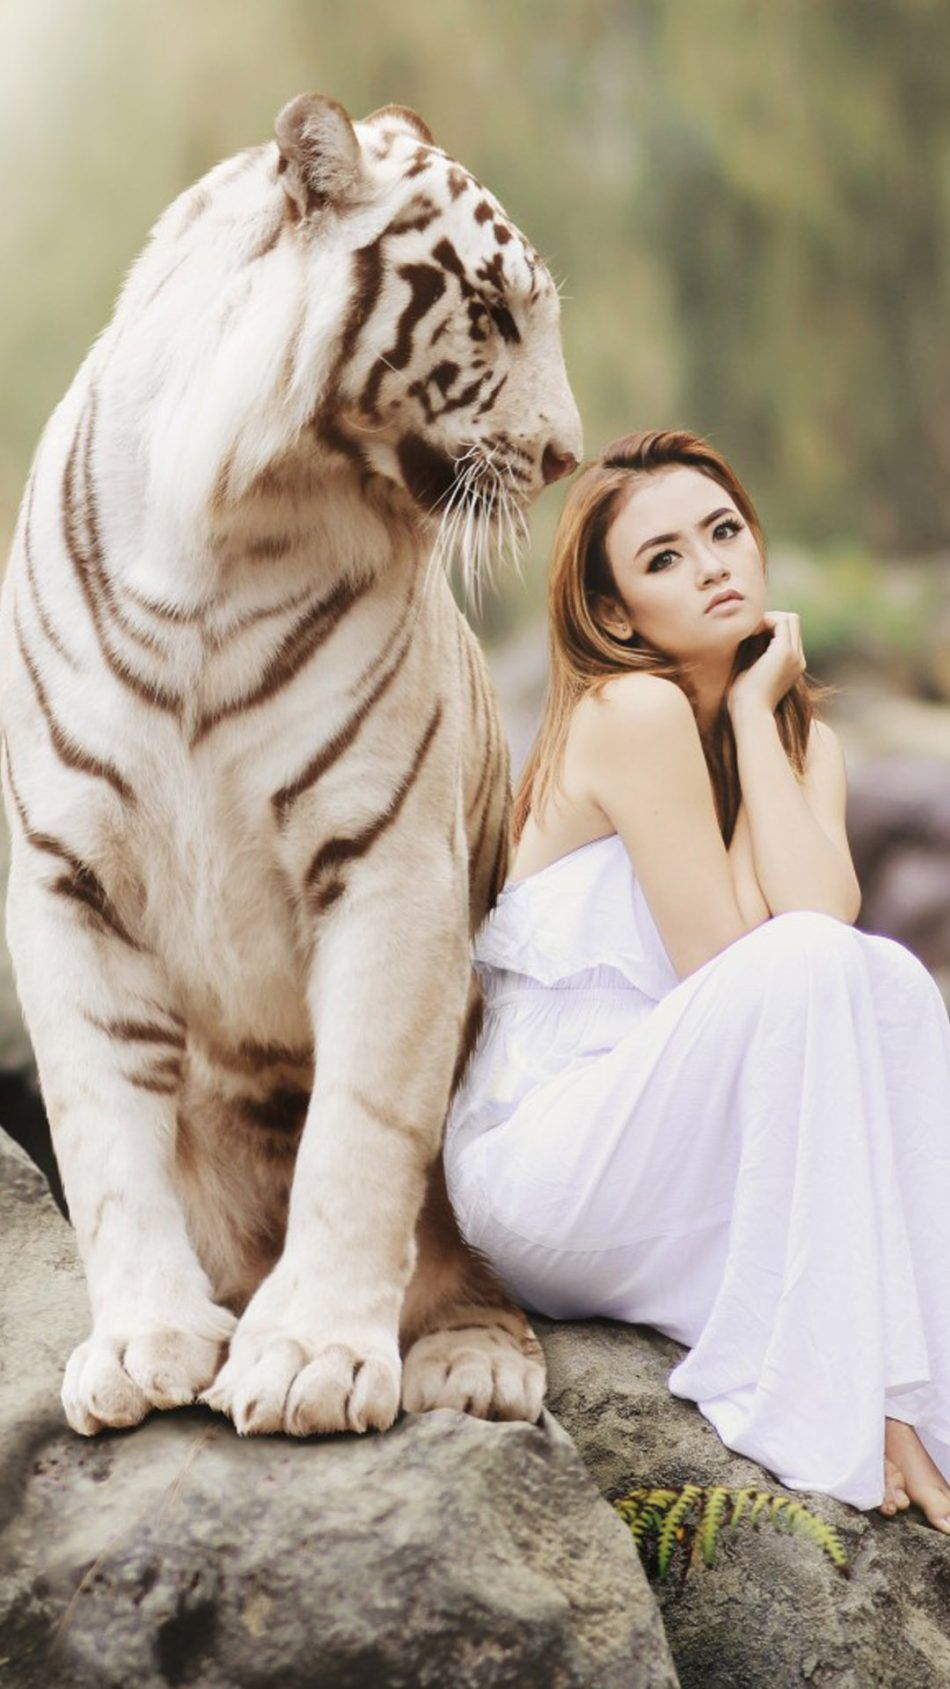 Asian Model With White Tiger Photoshoot 4k Ultra Hd Mobile Wallpaper White Tiger Tiger Love Tiger